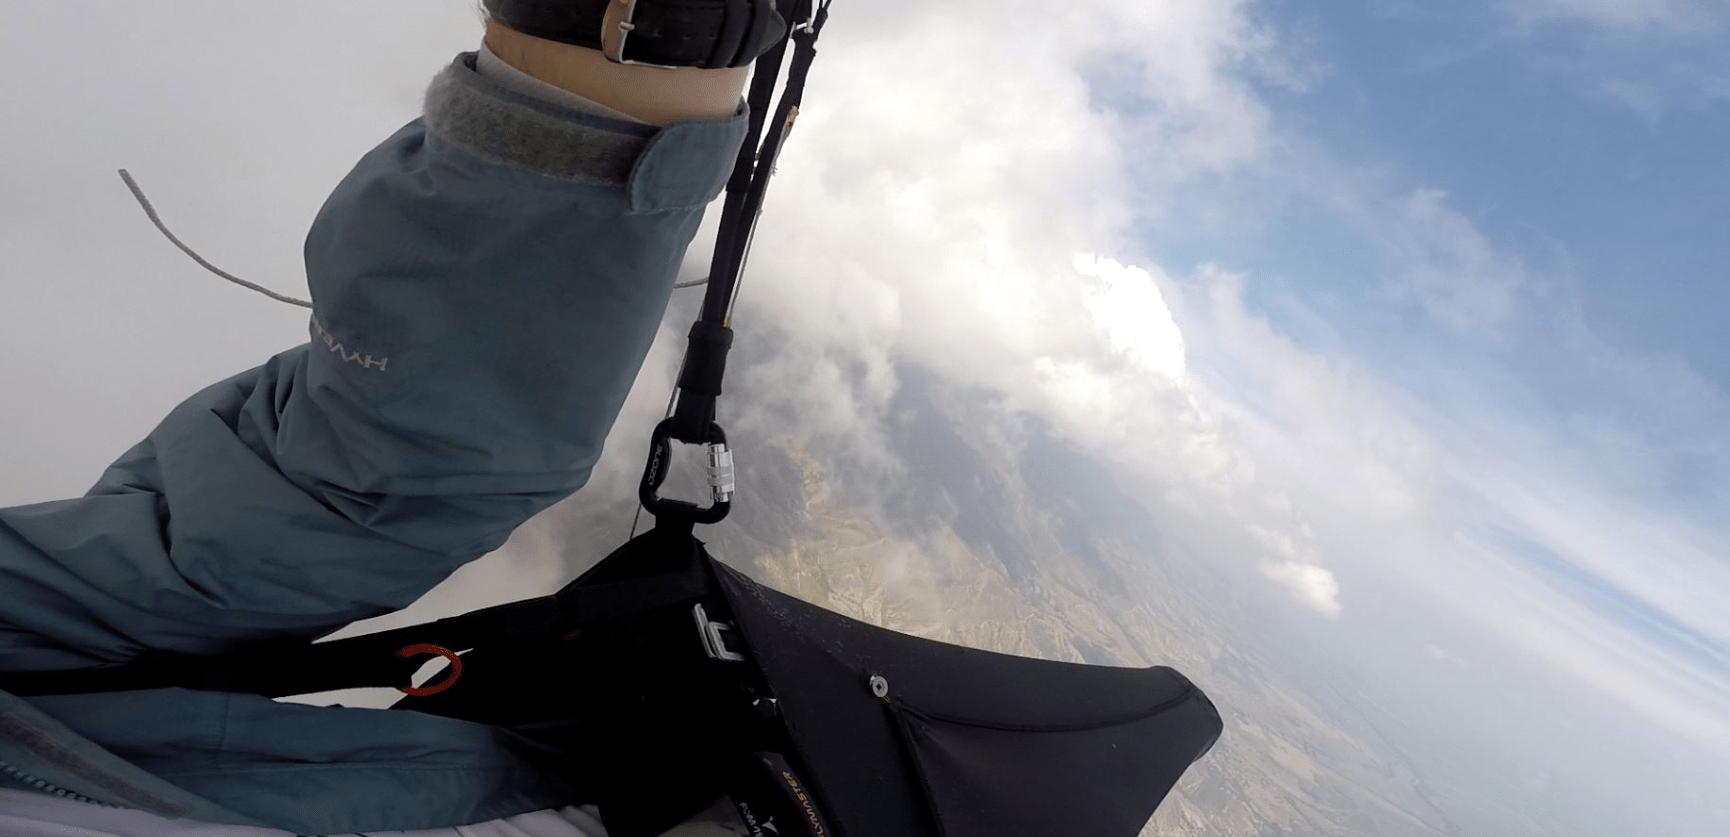 After punching out the side of the cloud I had this unique perspective of the Valle del Cauca